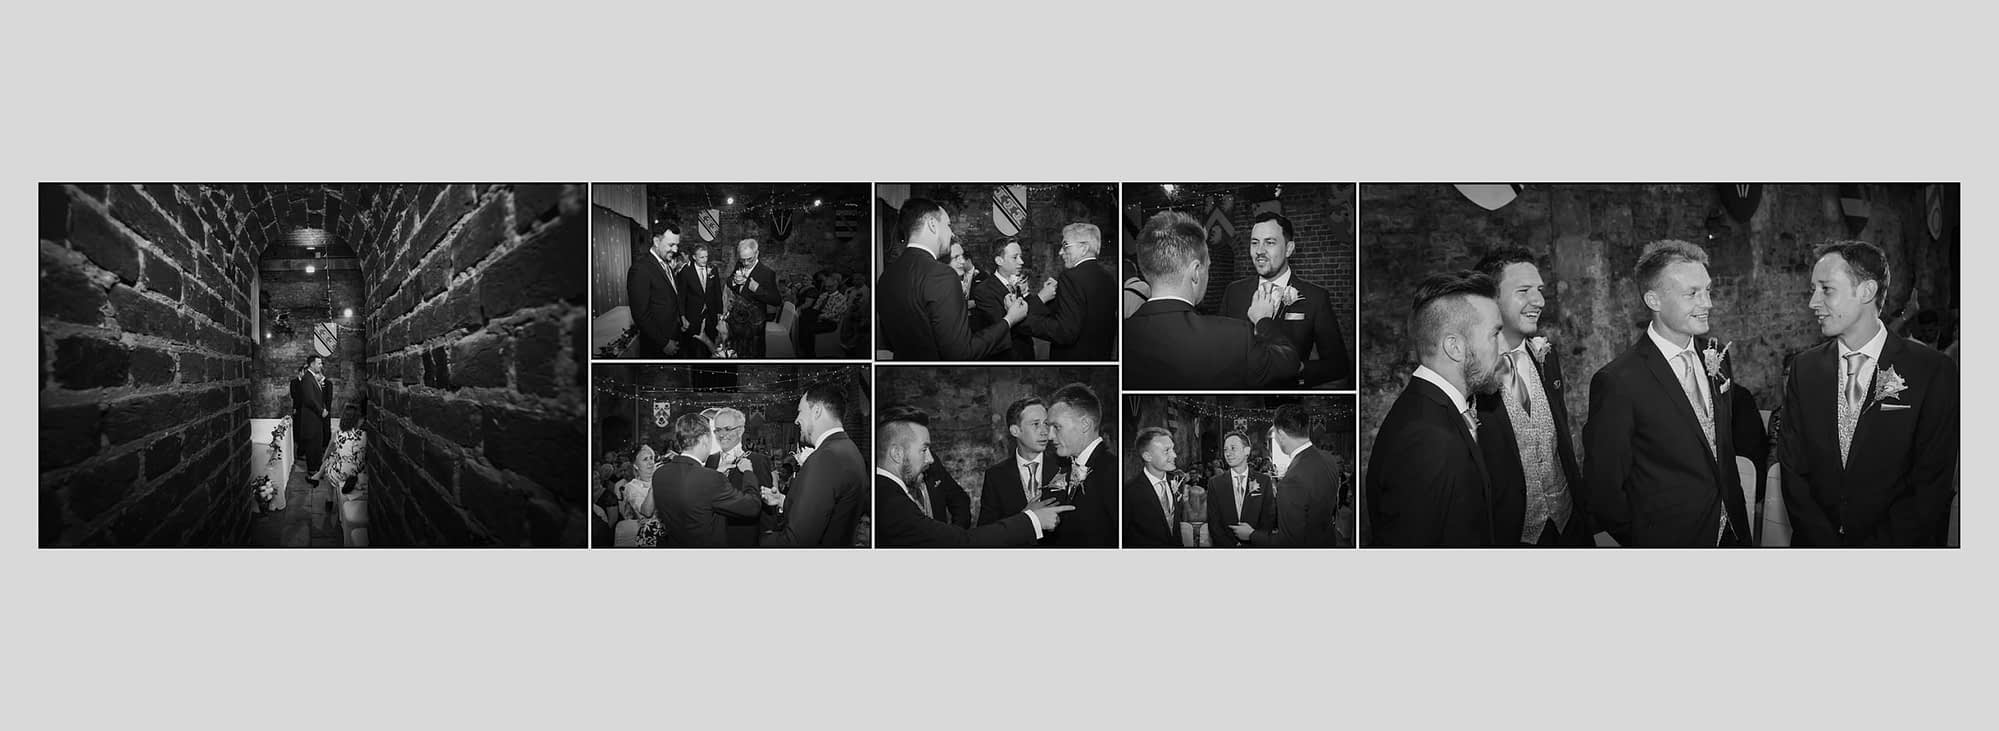 men in suits chatting